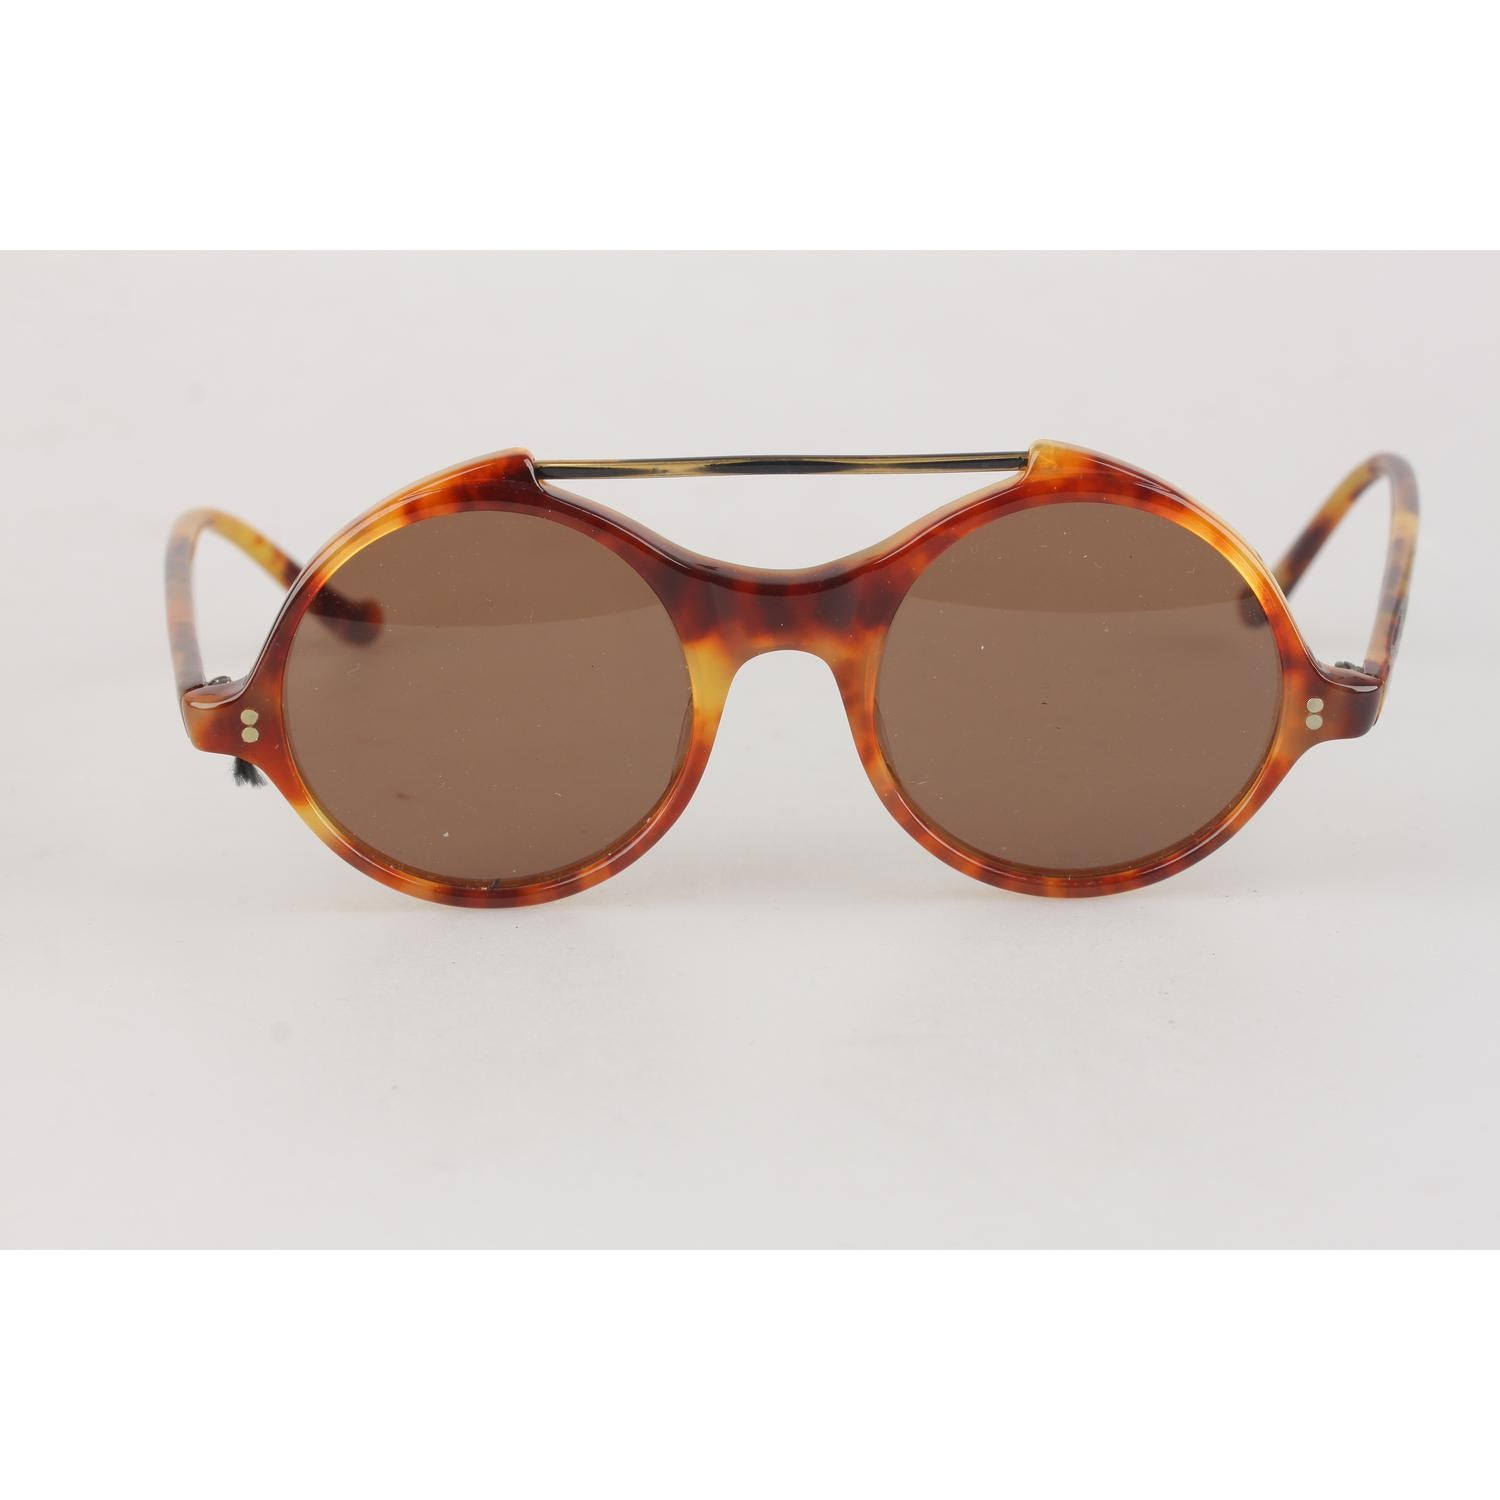 5d07aa689 Gianni Versace Vintage Round Sunglasses Mod. 531 45mm New Old Stock For Sale  at 1stdibs